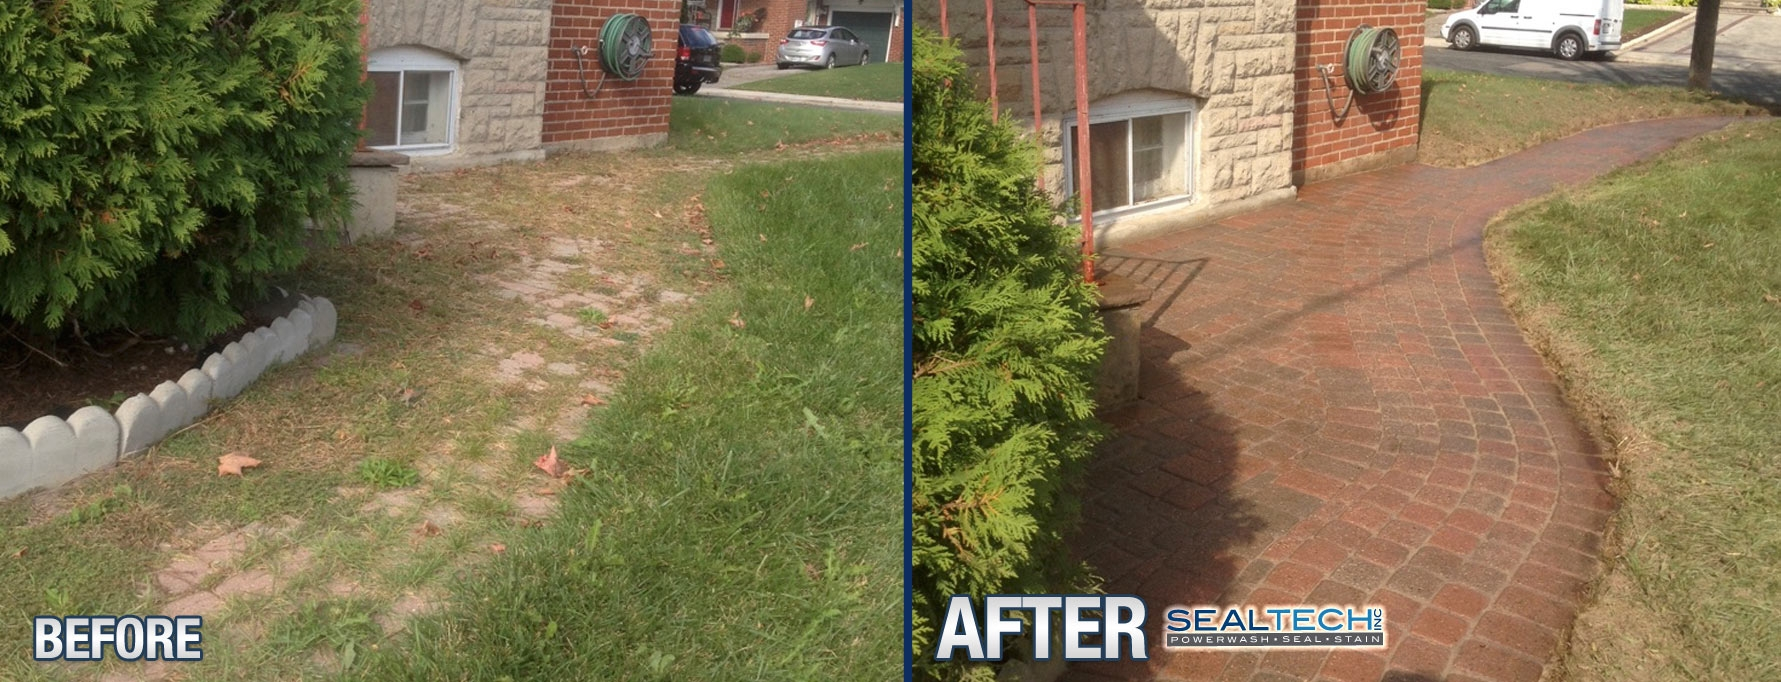 Interlock-weed-removal-toronto-before-after-